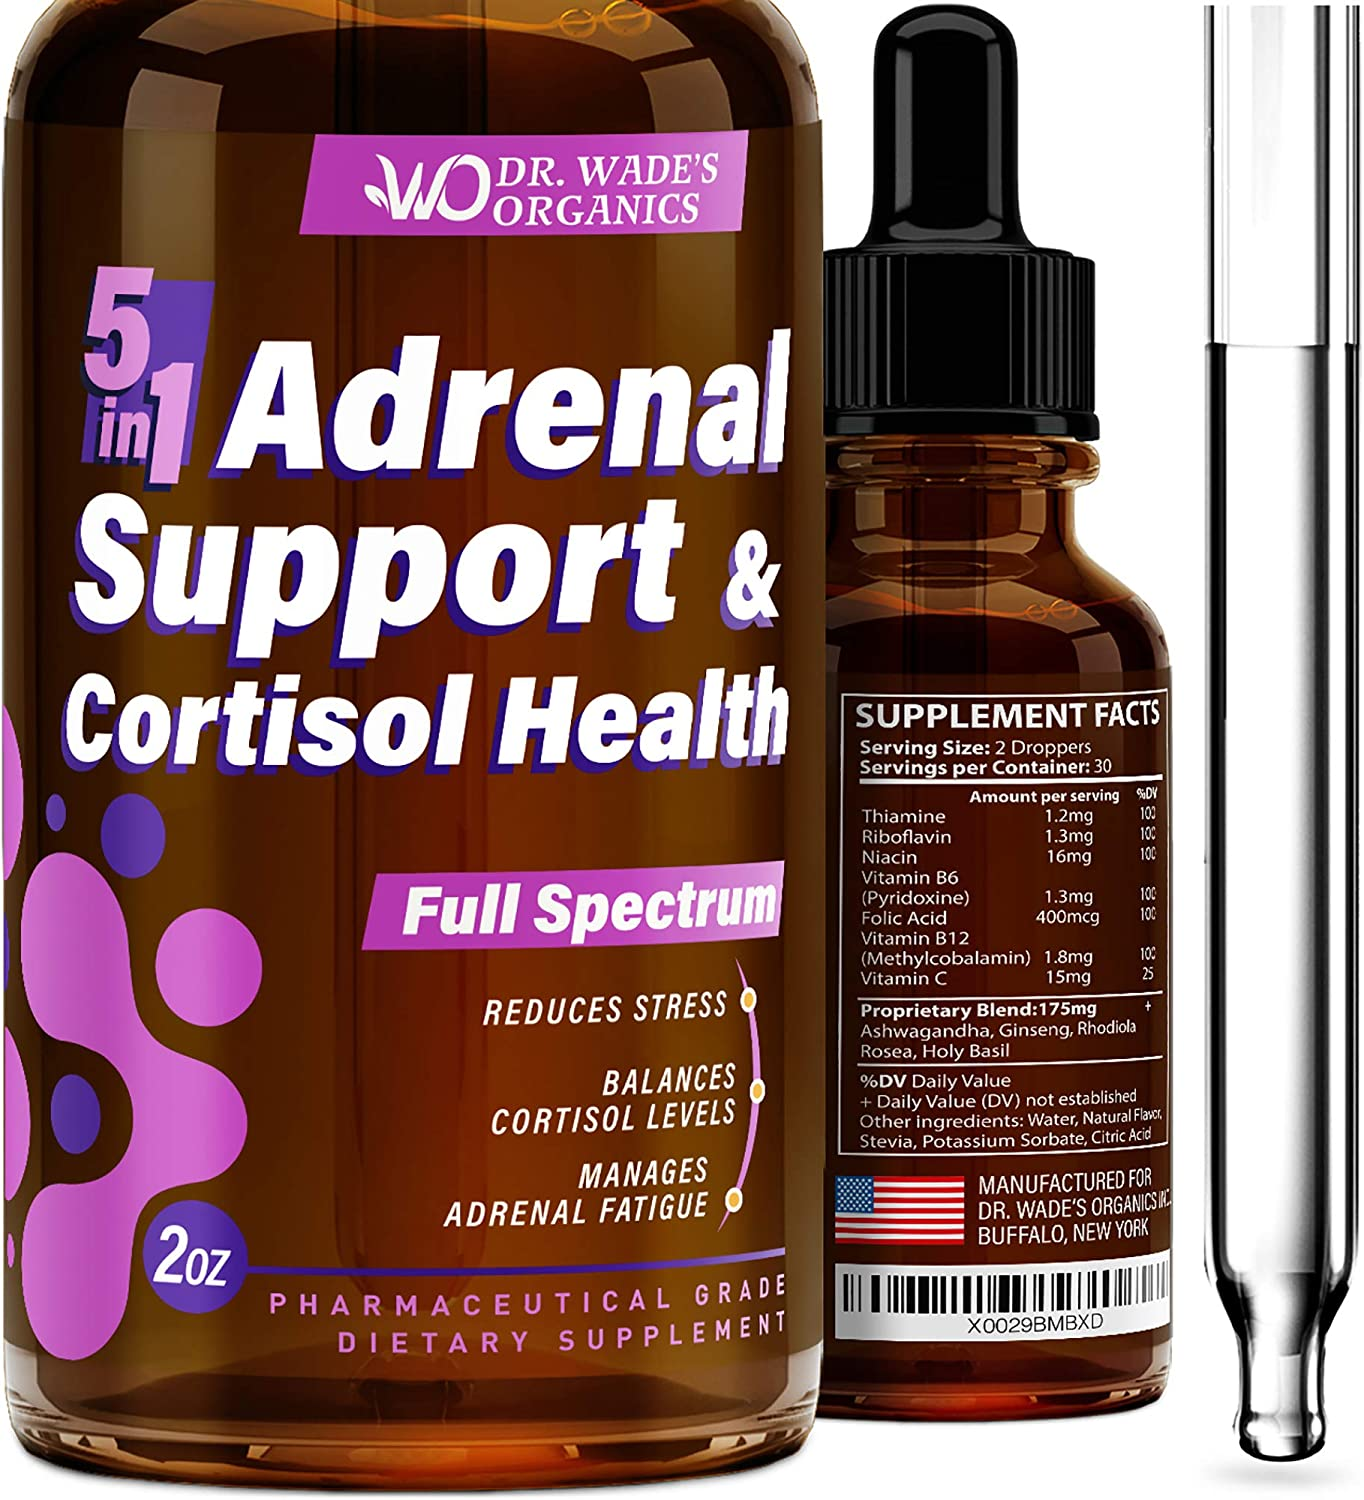 Adrenal Fatigue Support Supplement & Cortisol Manager - Liquid Adrenal Formula for 4X Absorption - Made in USA - Adrenal Daily Support - Balanced Cortisol Response - Effective Stress Relief